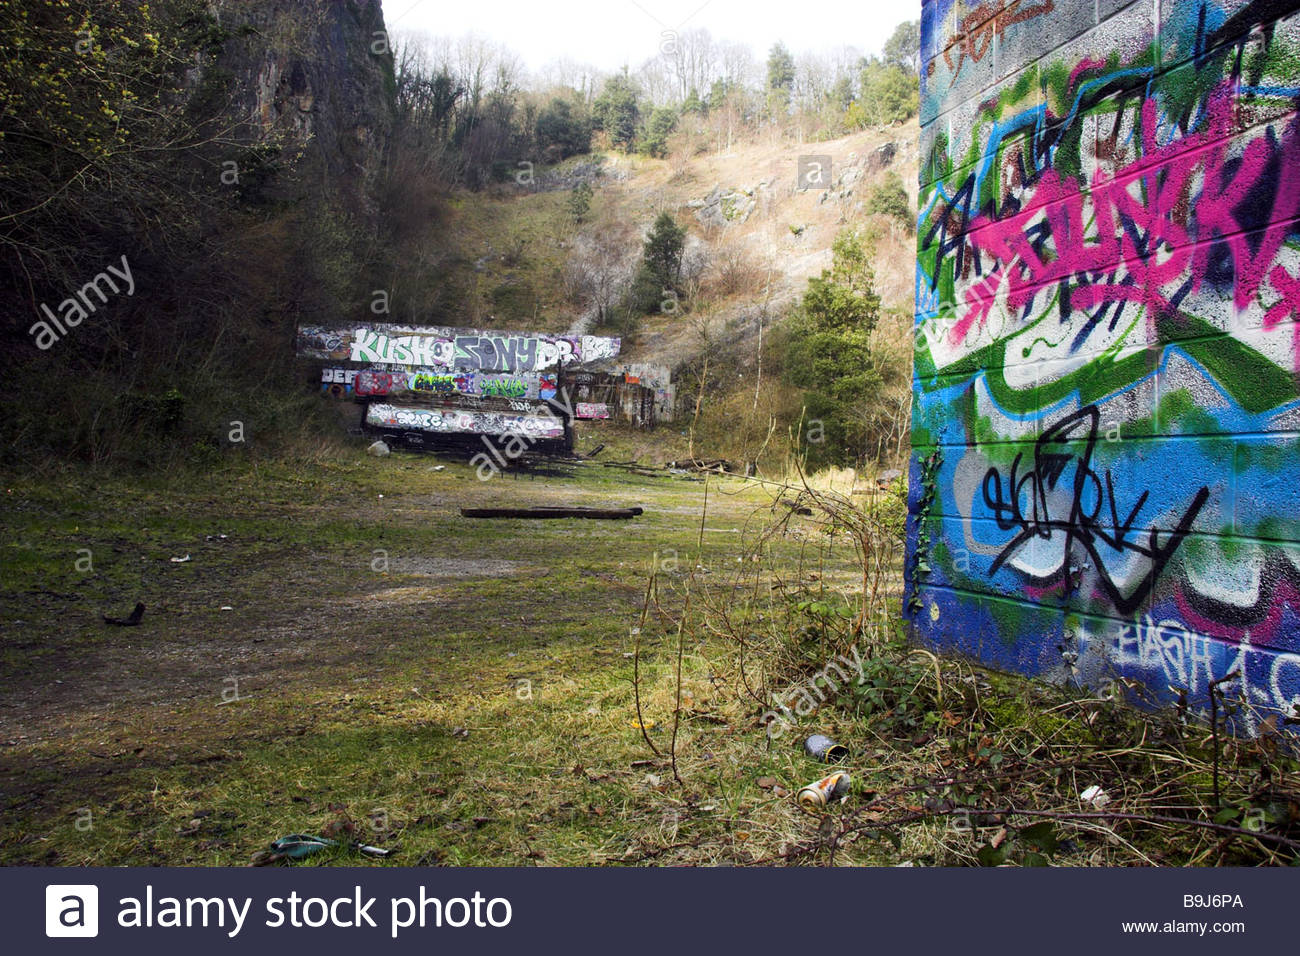 write on walls stock photos write on walls stock images alamy a former police shooting range now a scene of anti social behaviour avon